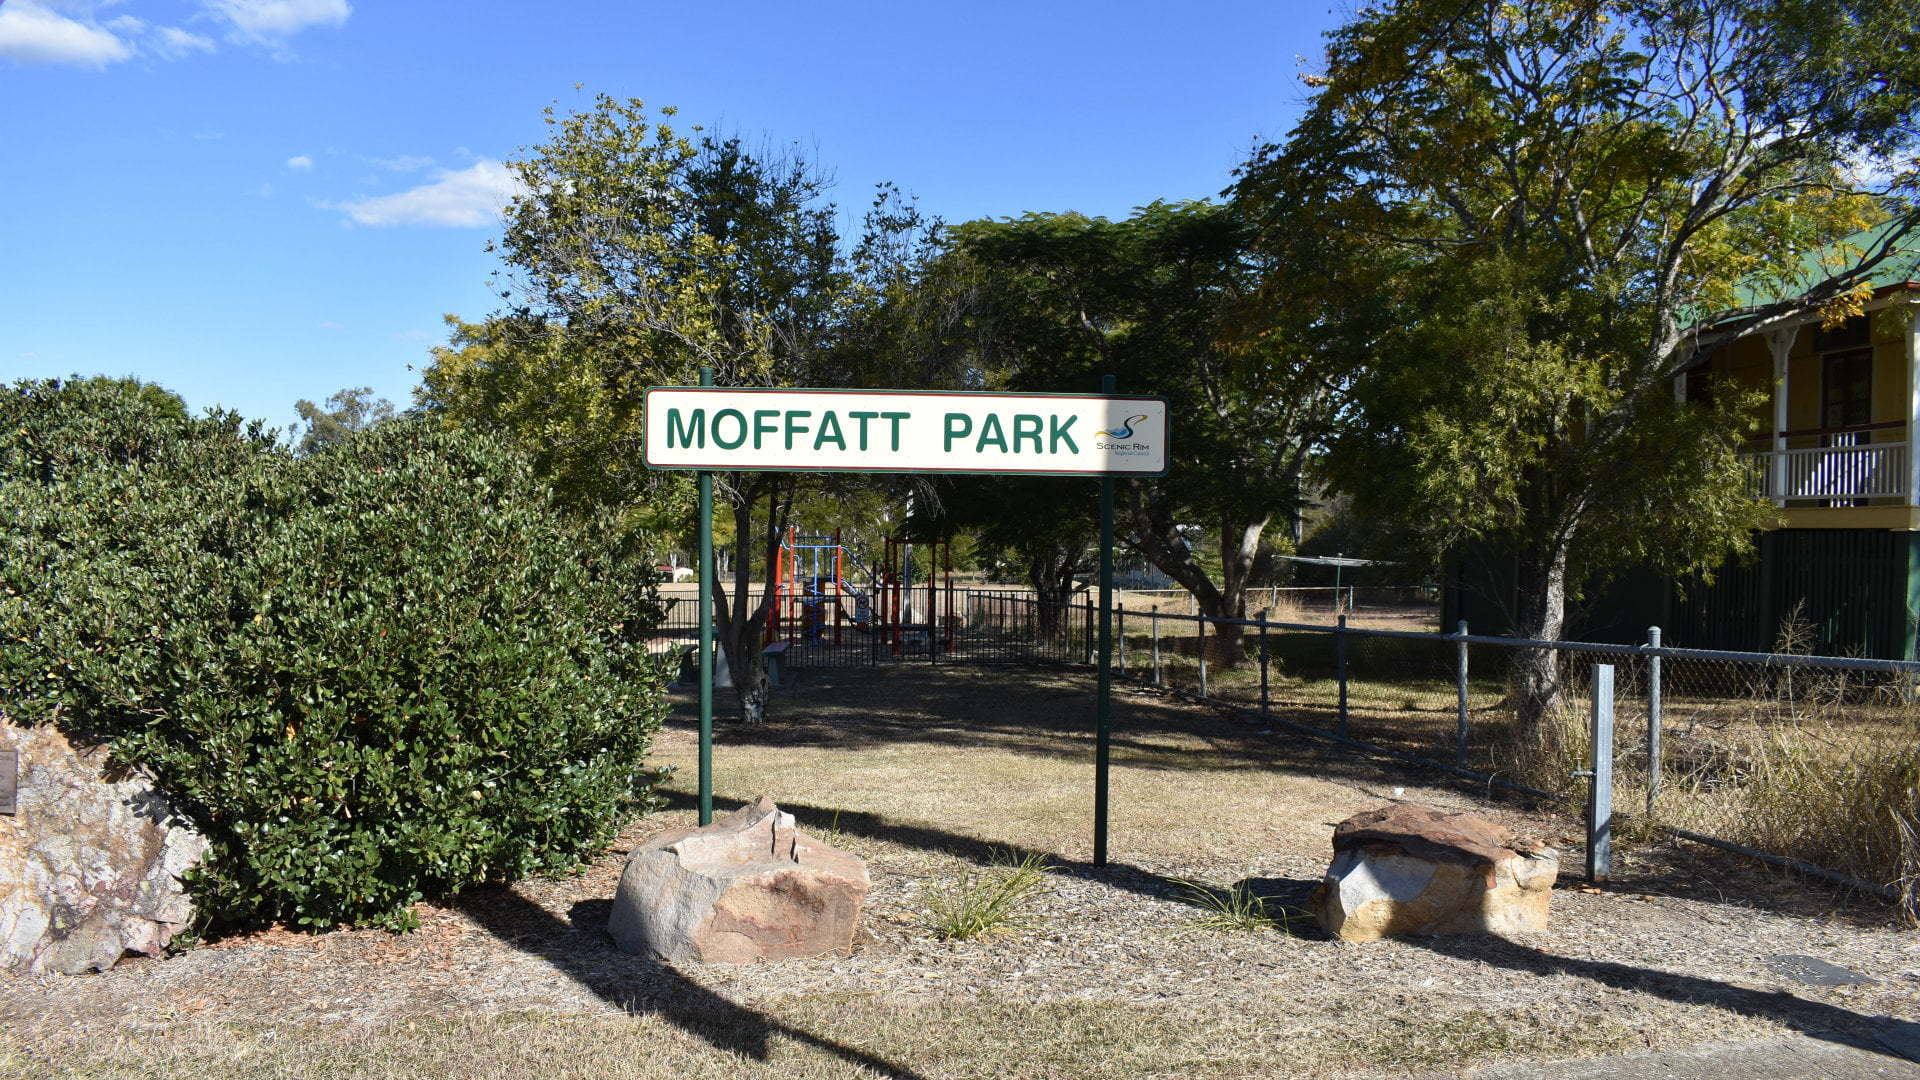 Entrance and sign for Moffatt Park, a small playground park at Aratula with a fenced-in playgroundand a picnic table beside it